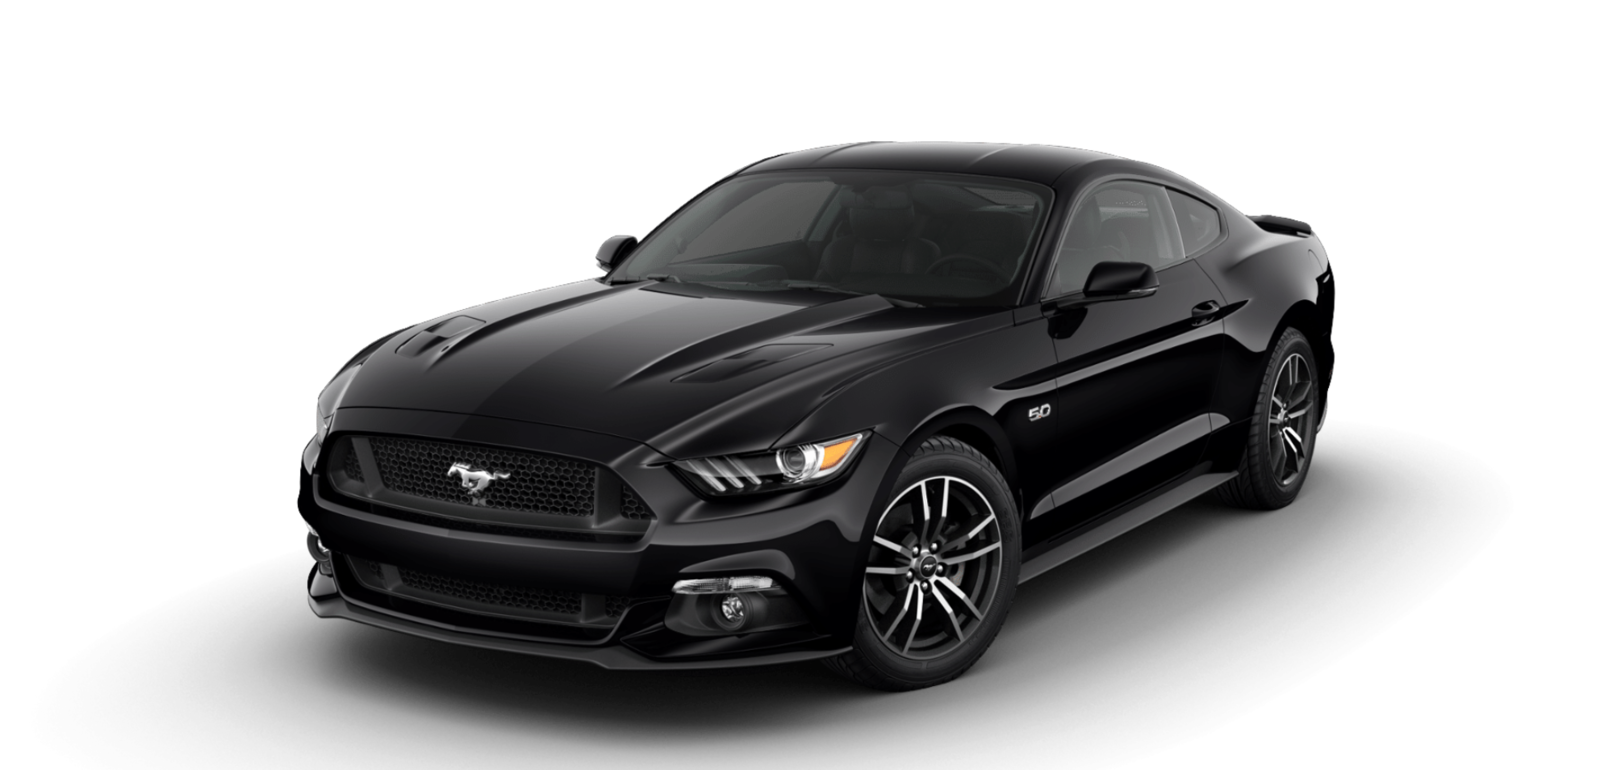 My first car is gonna be a 2016 mustang gt i dont know to get automatic or manual